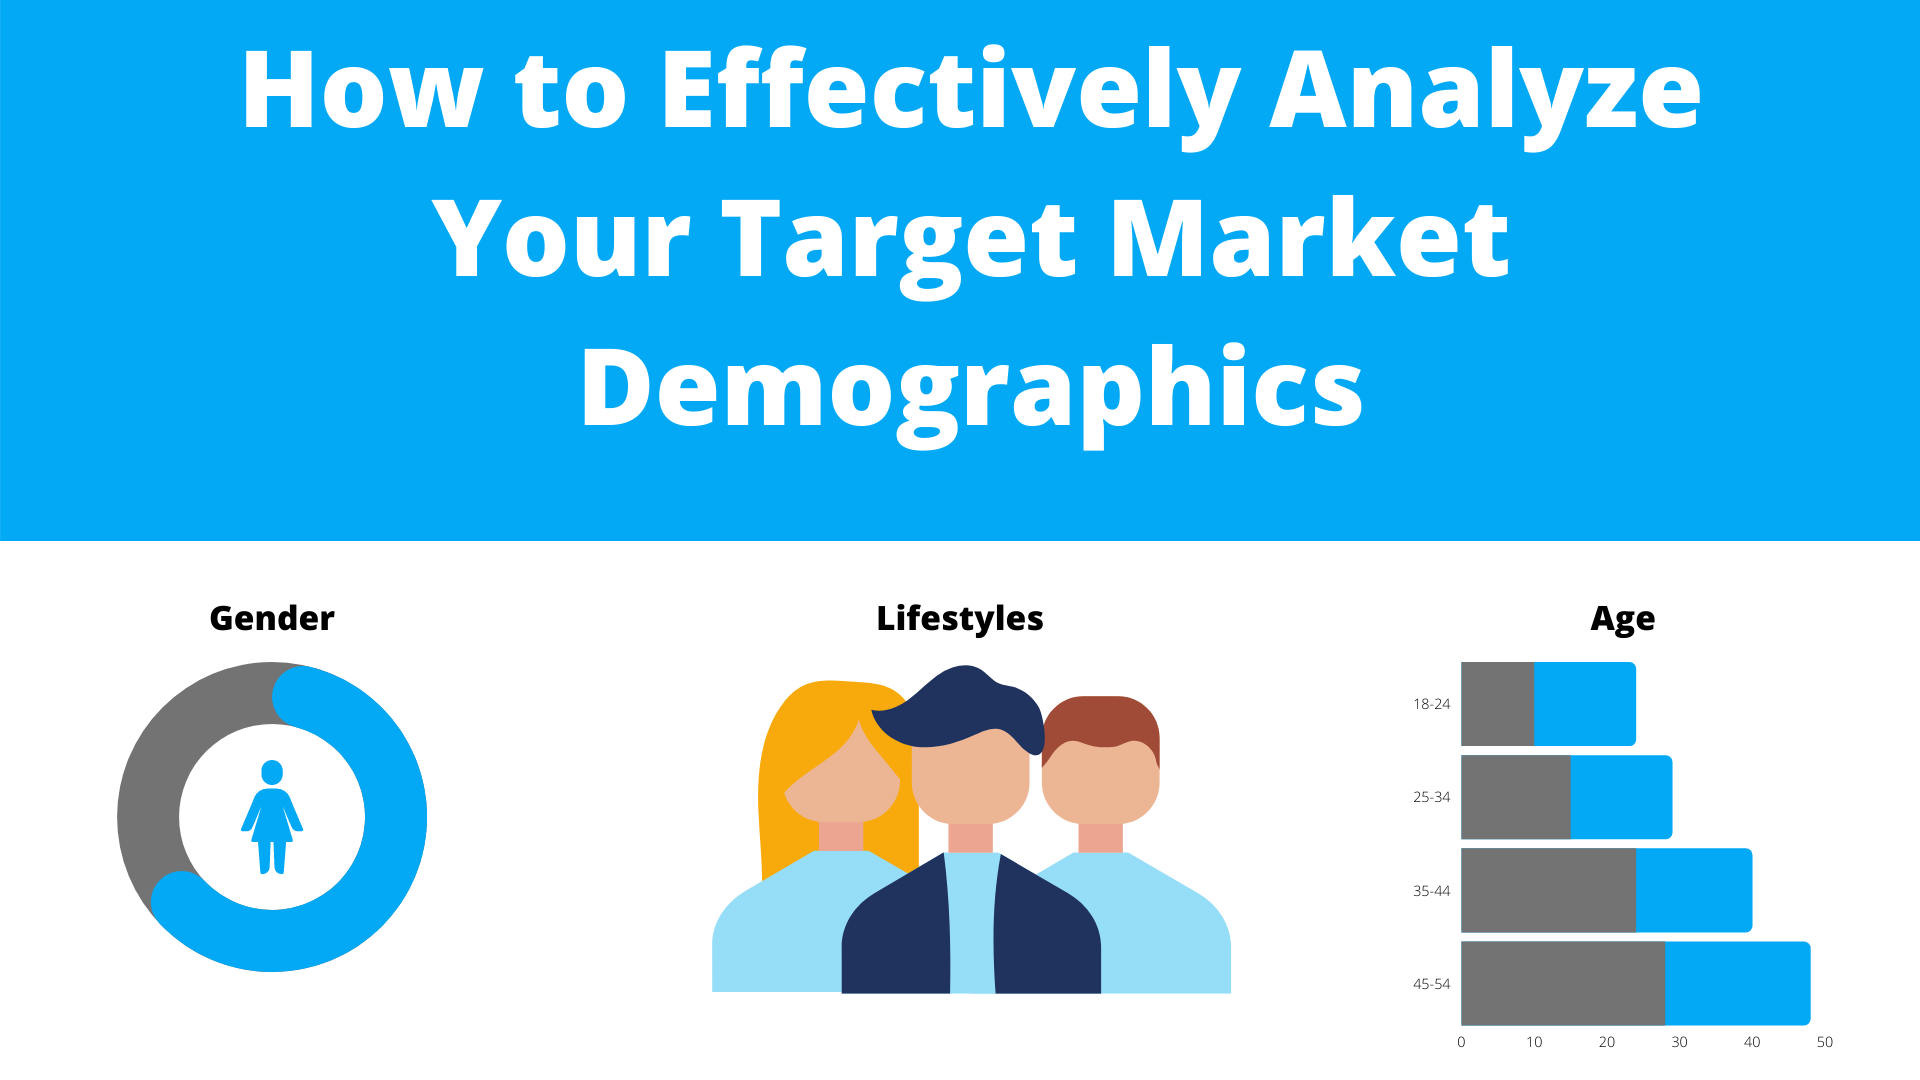 How to effectively analyze your target market Demographics